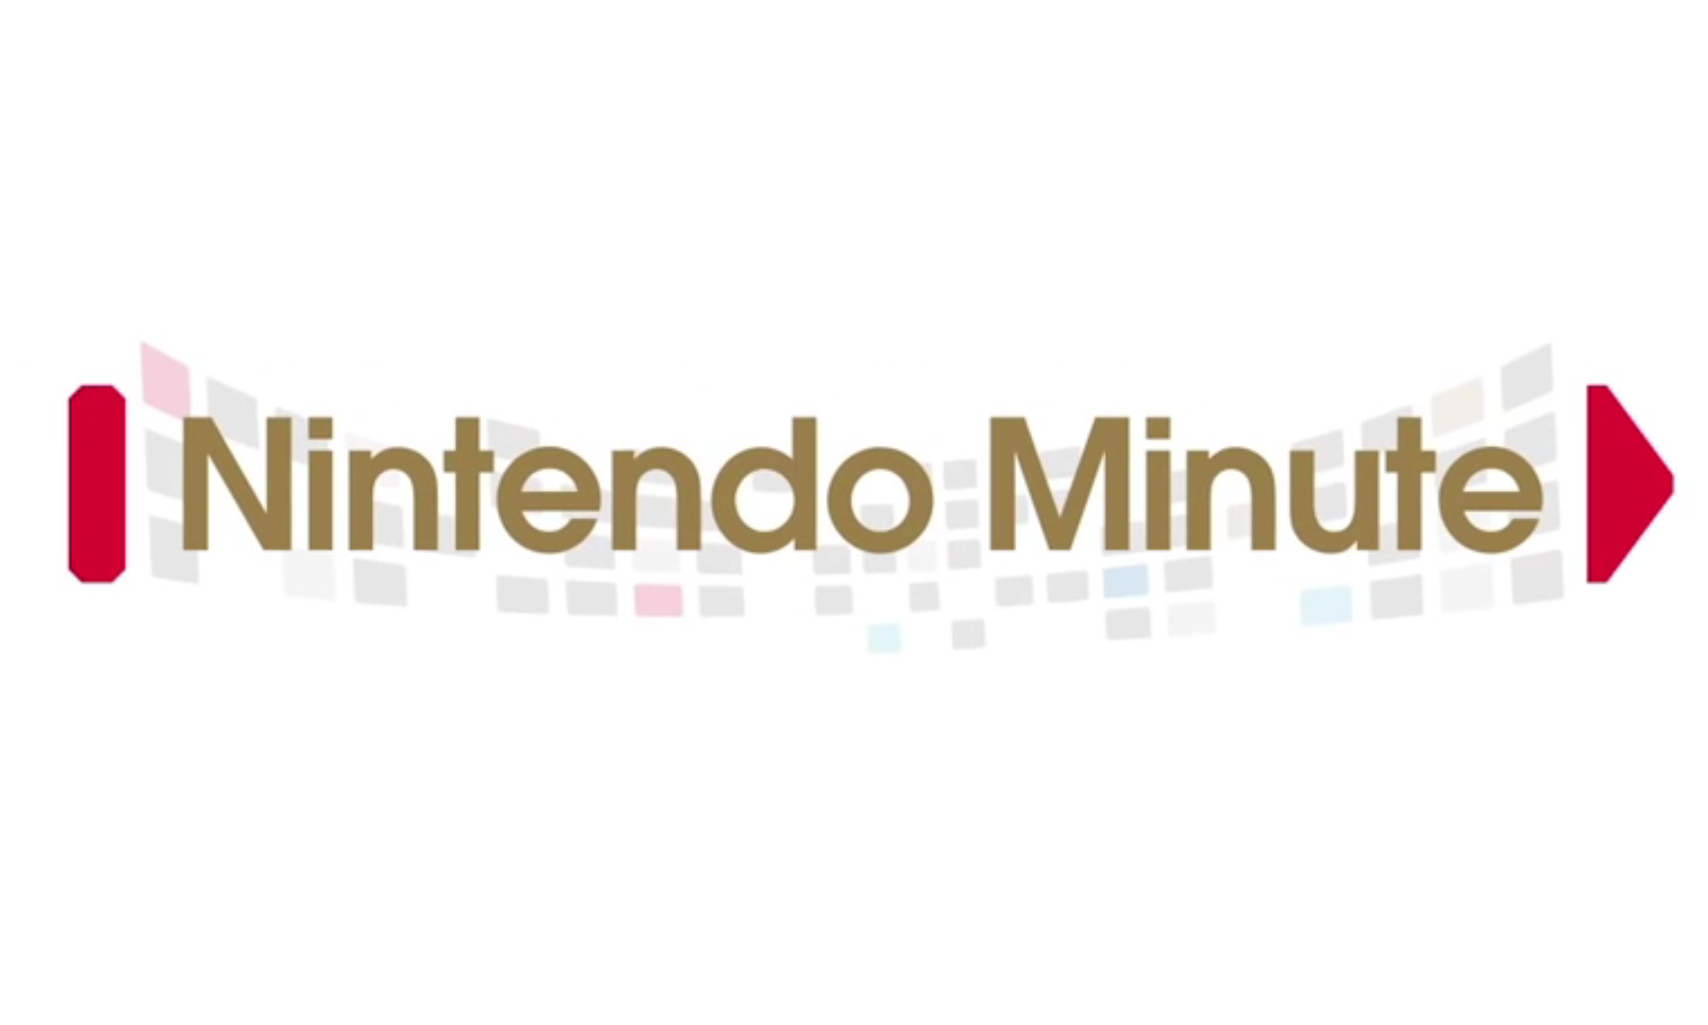 Nintendo Minute Live At E3 2014